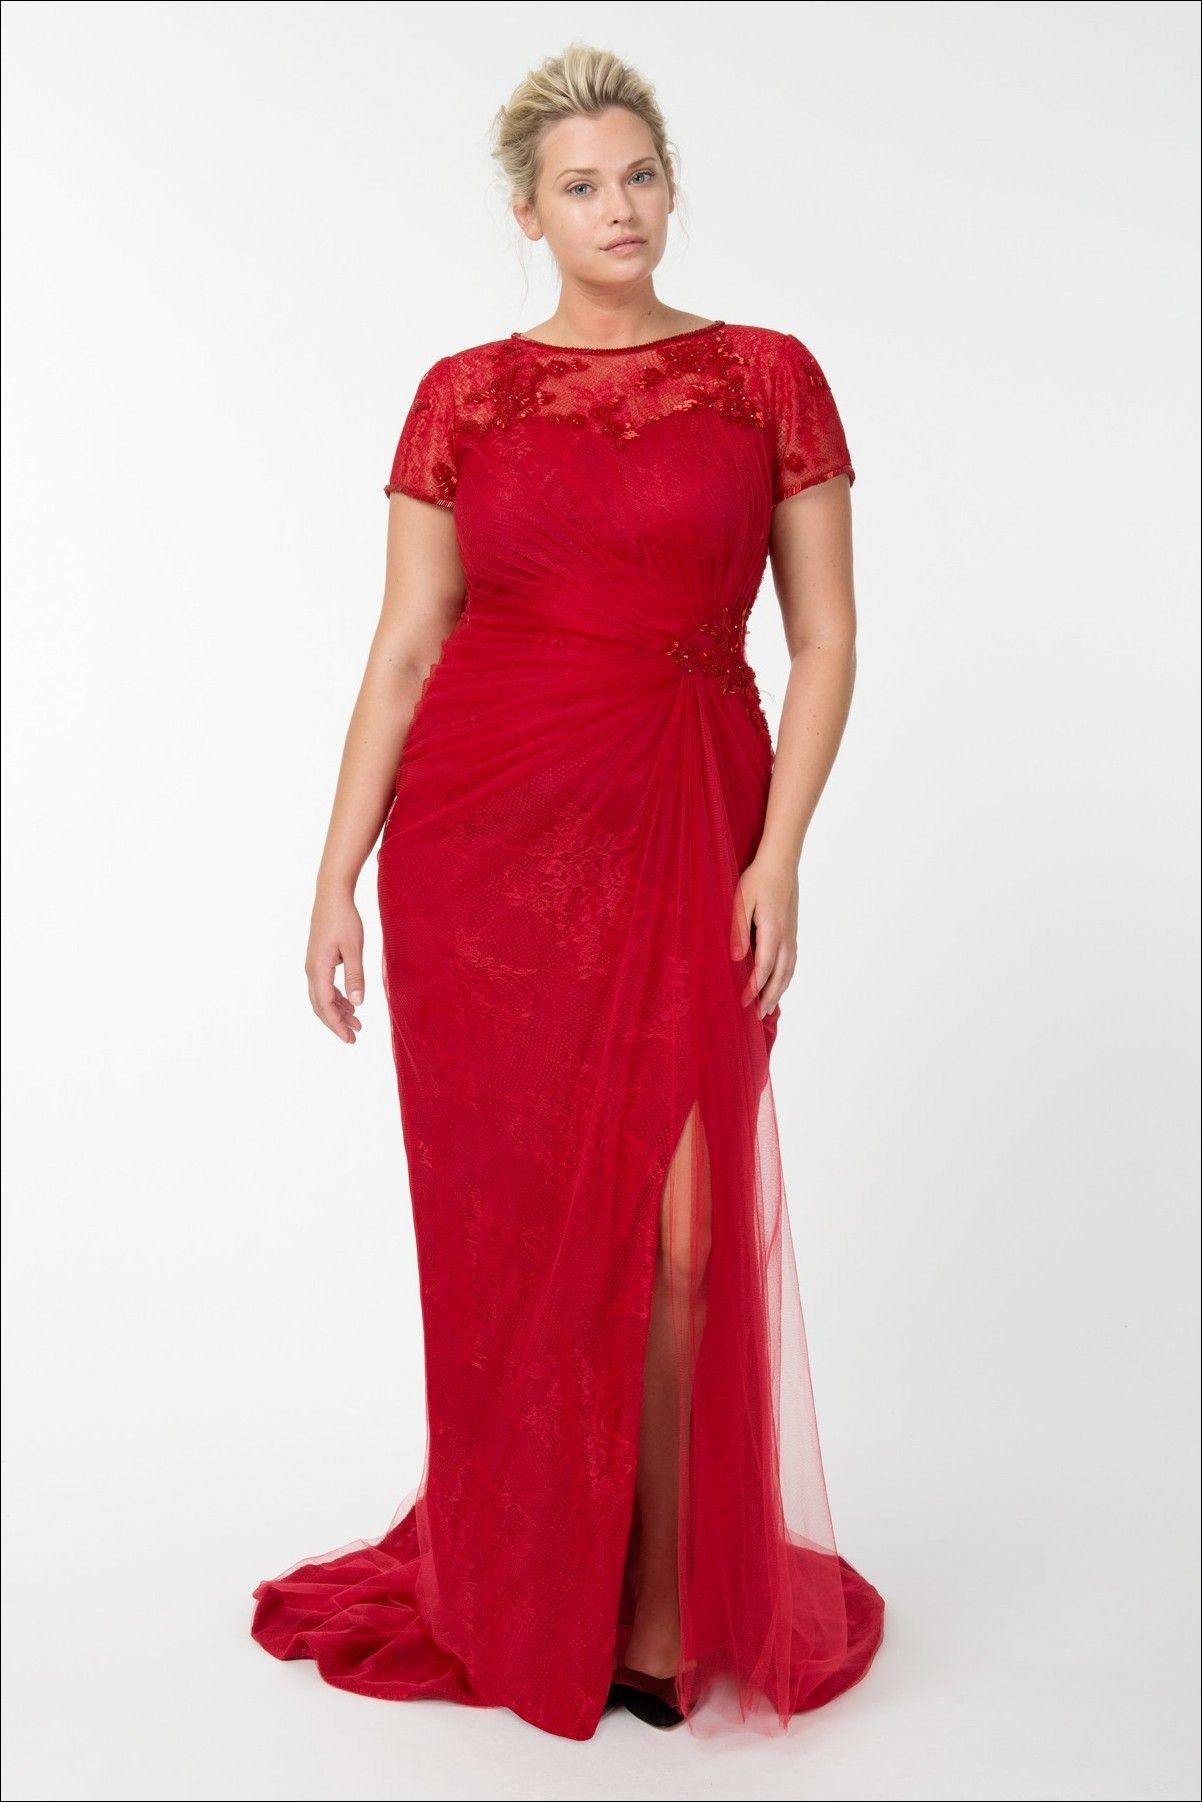 Plus Size Red Wedding Dresses Wedding Plus Size Evening Dress Long